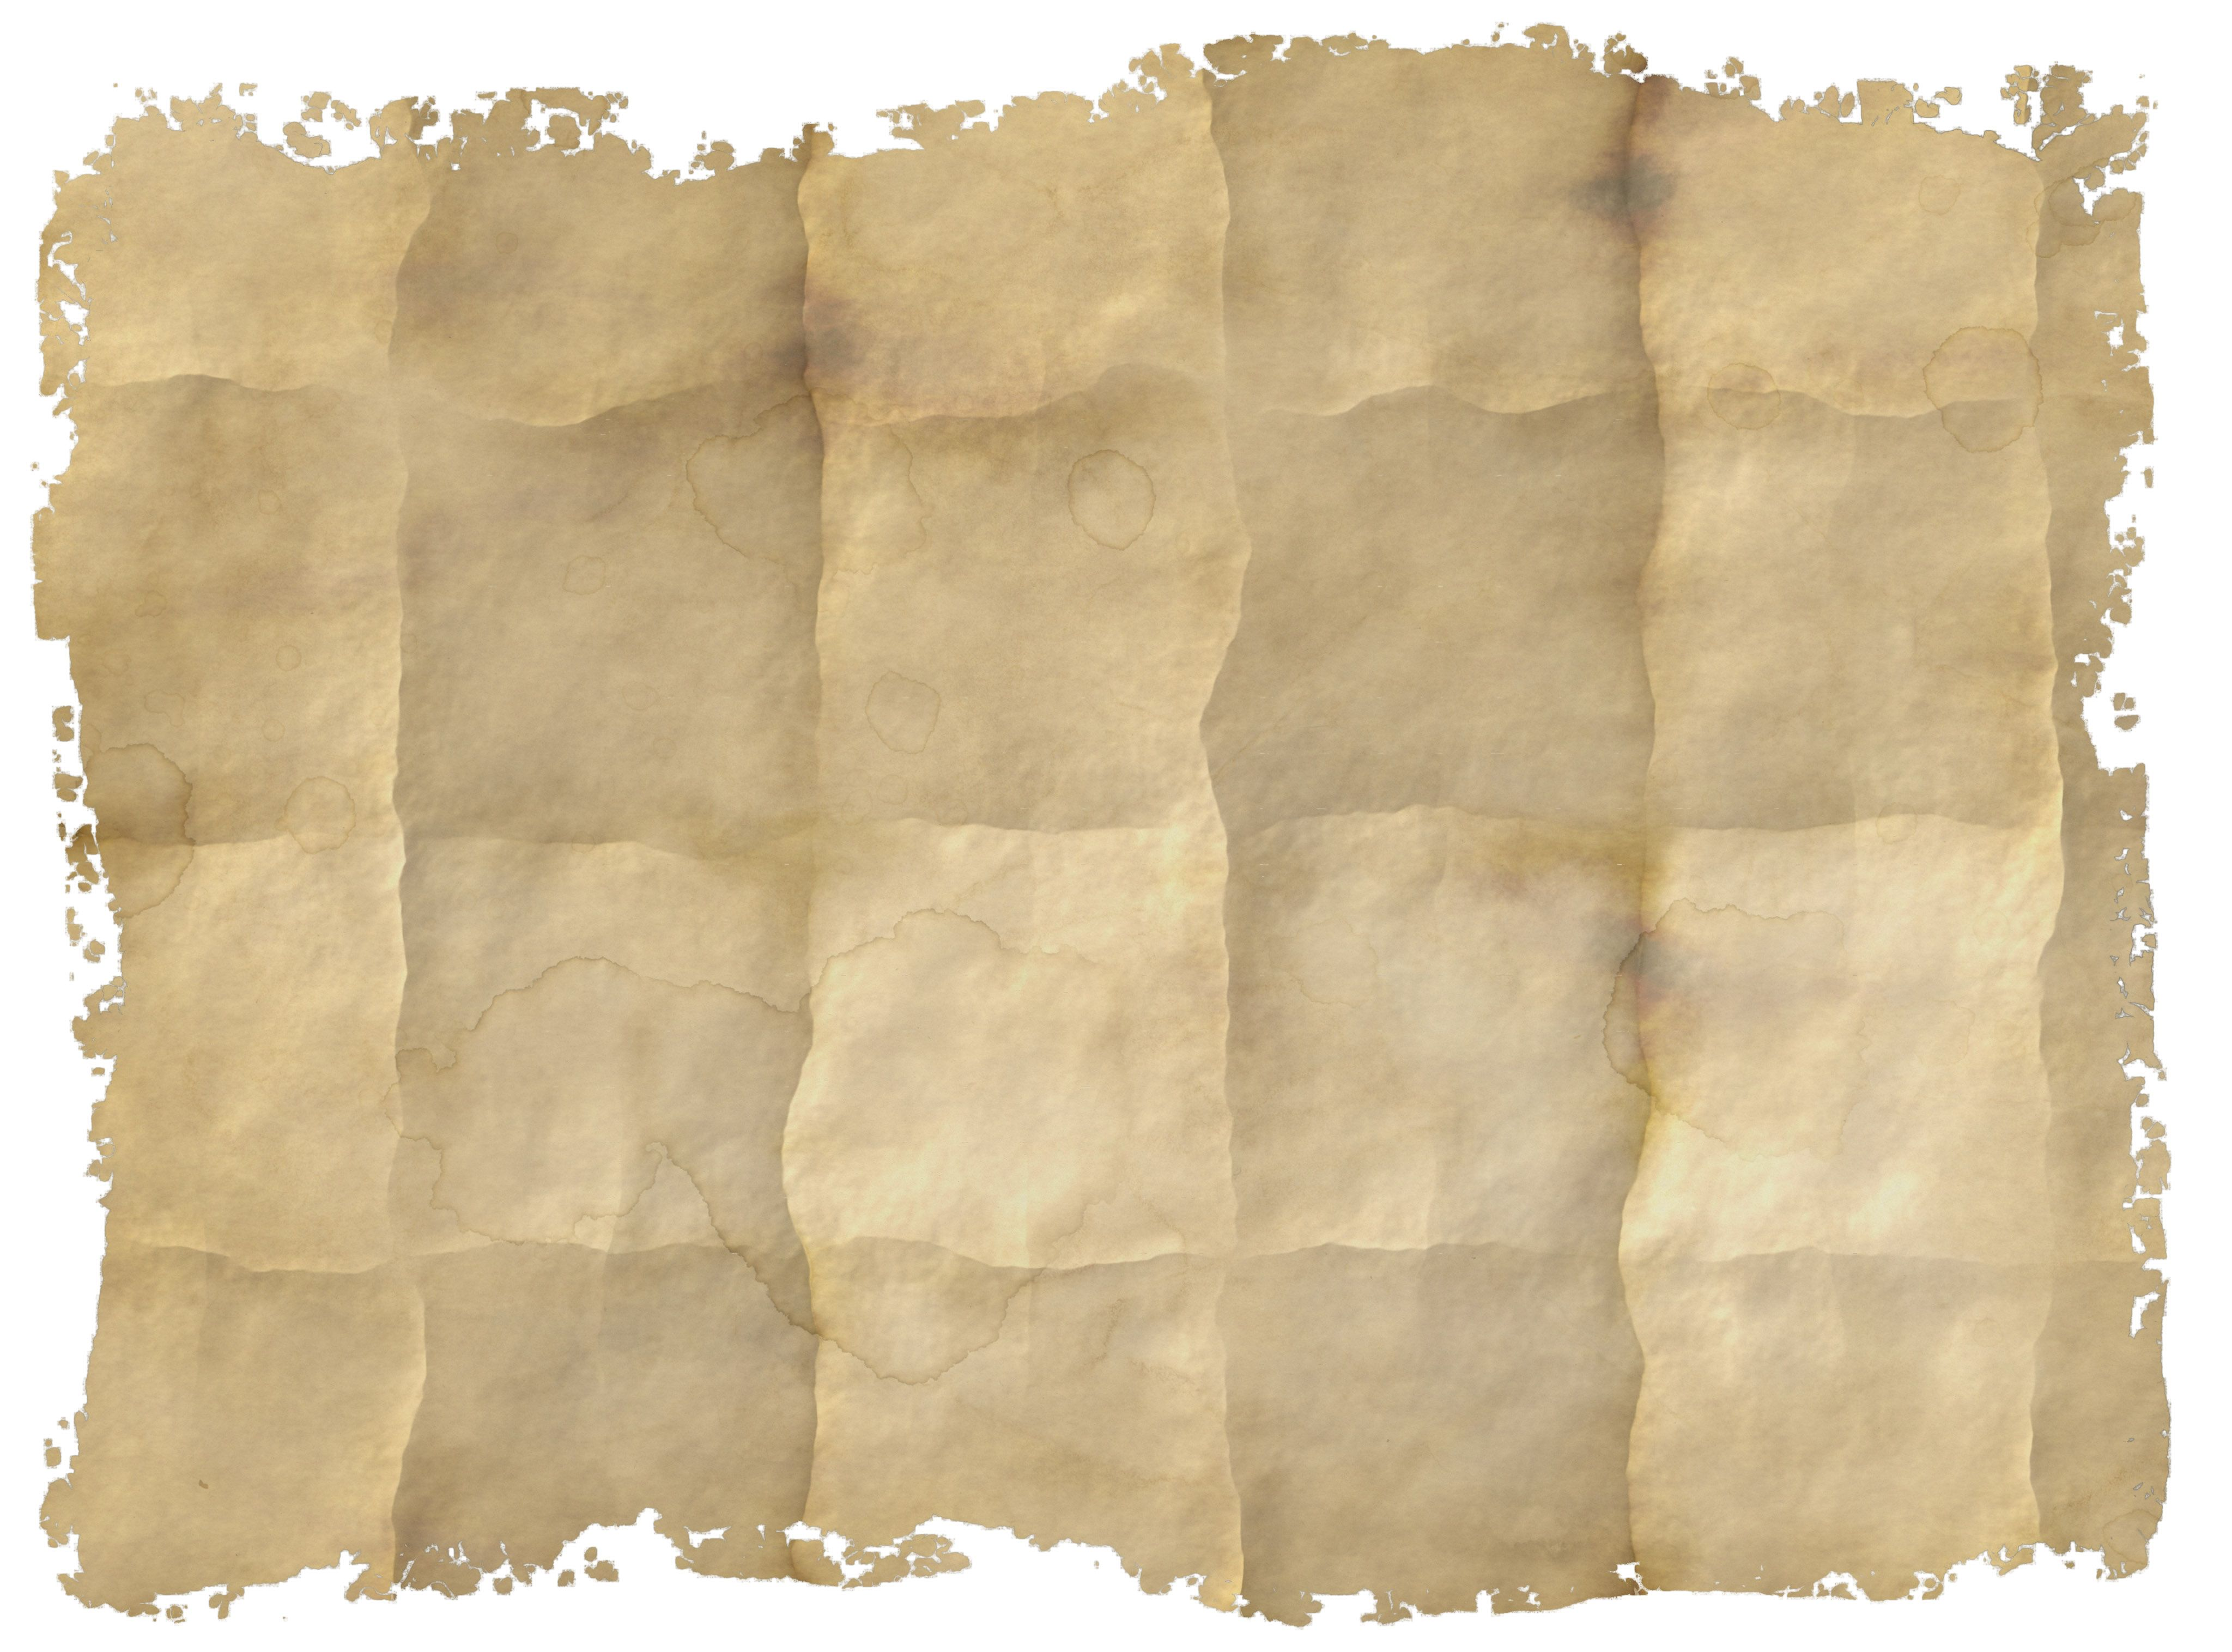 Ripped paper parchment. Pin by shirley murphy